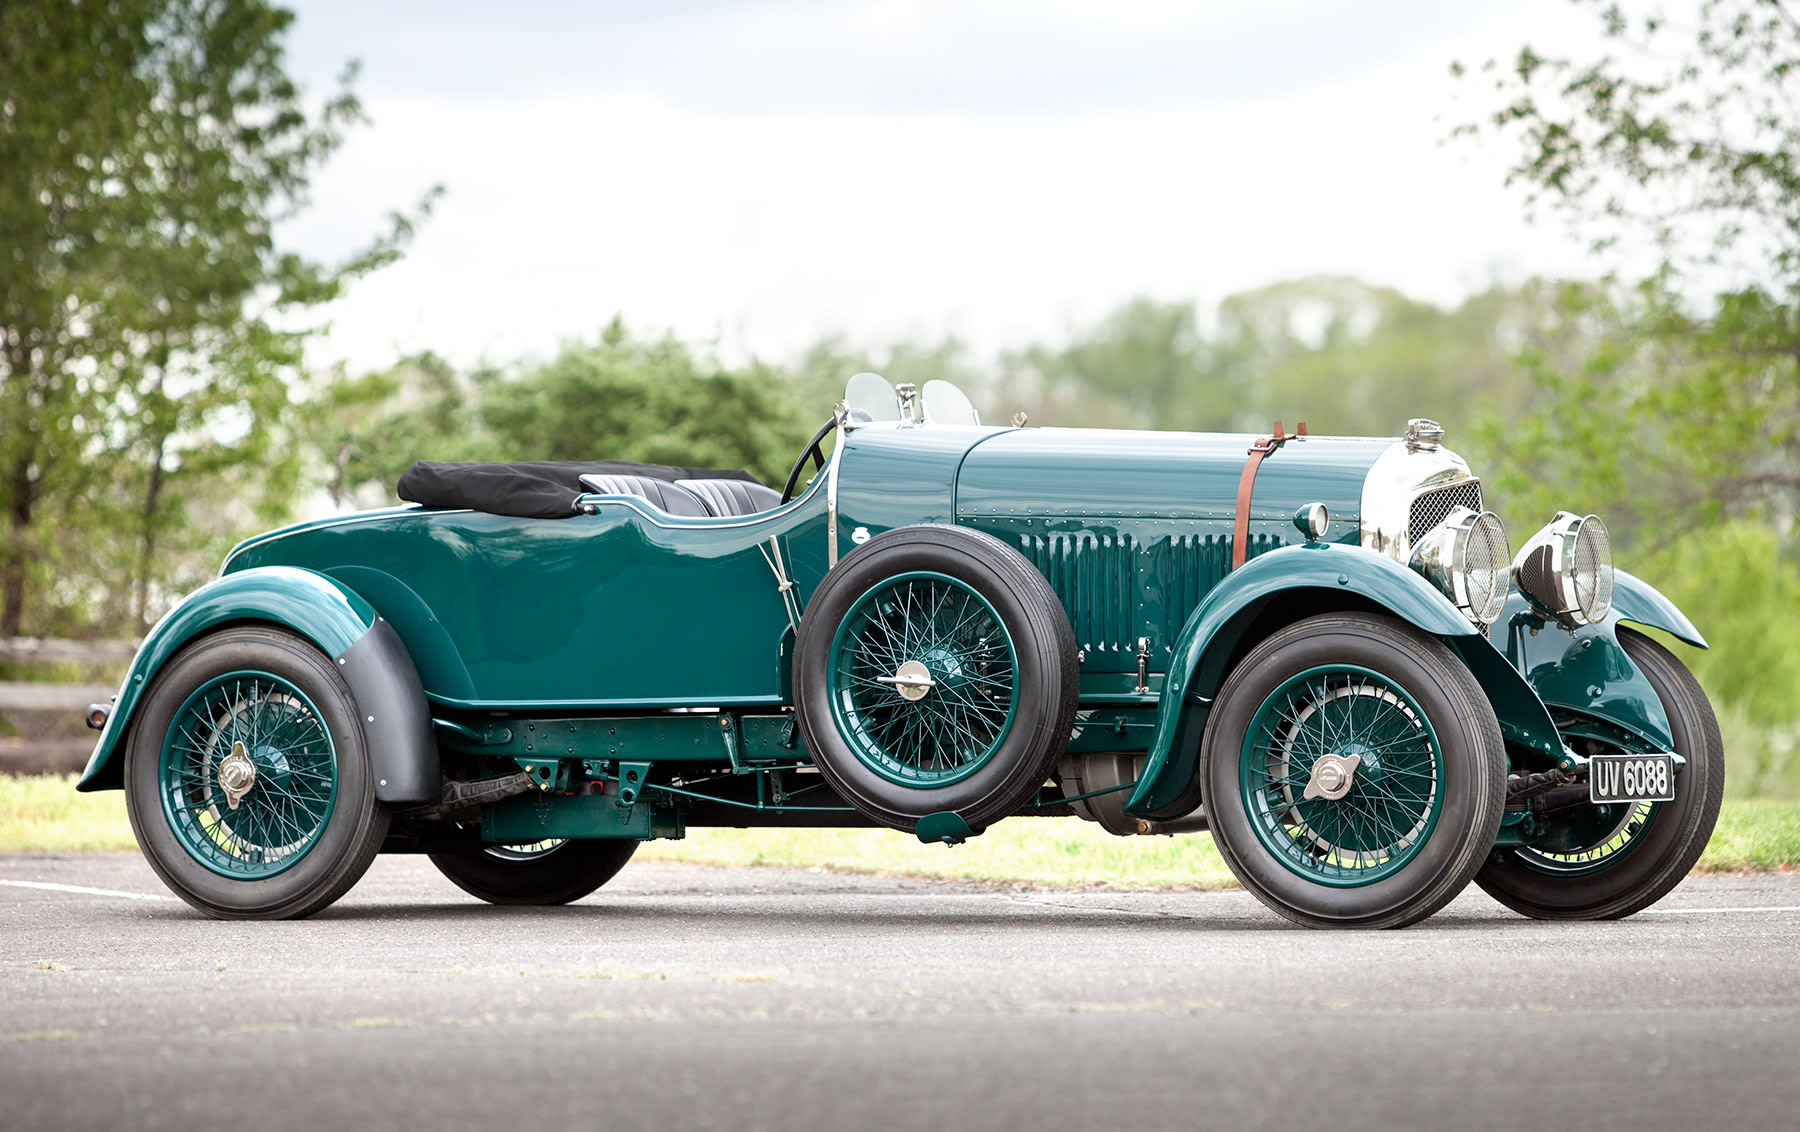 1929 Bentley 4 1/2 Litre Two-Seat Sports